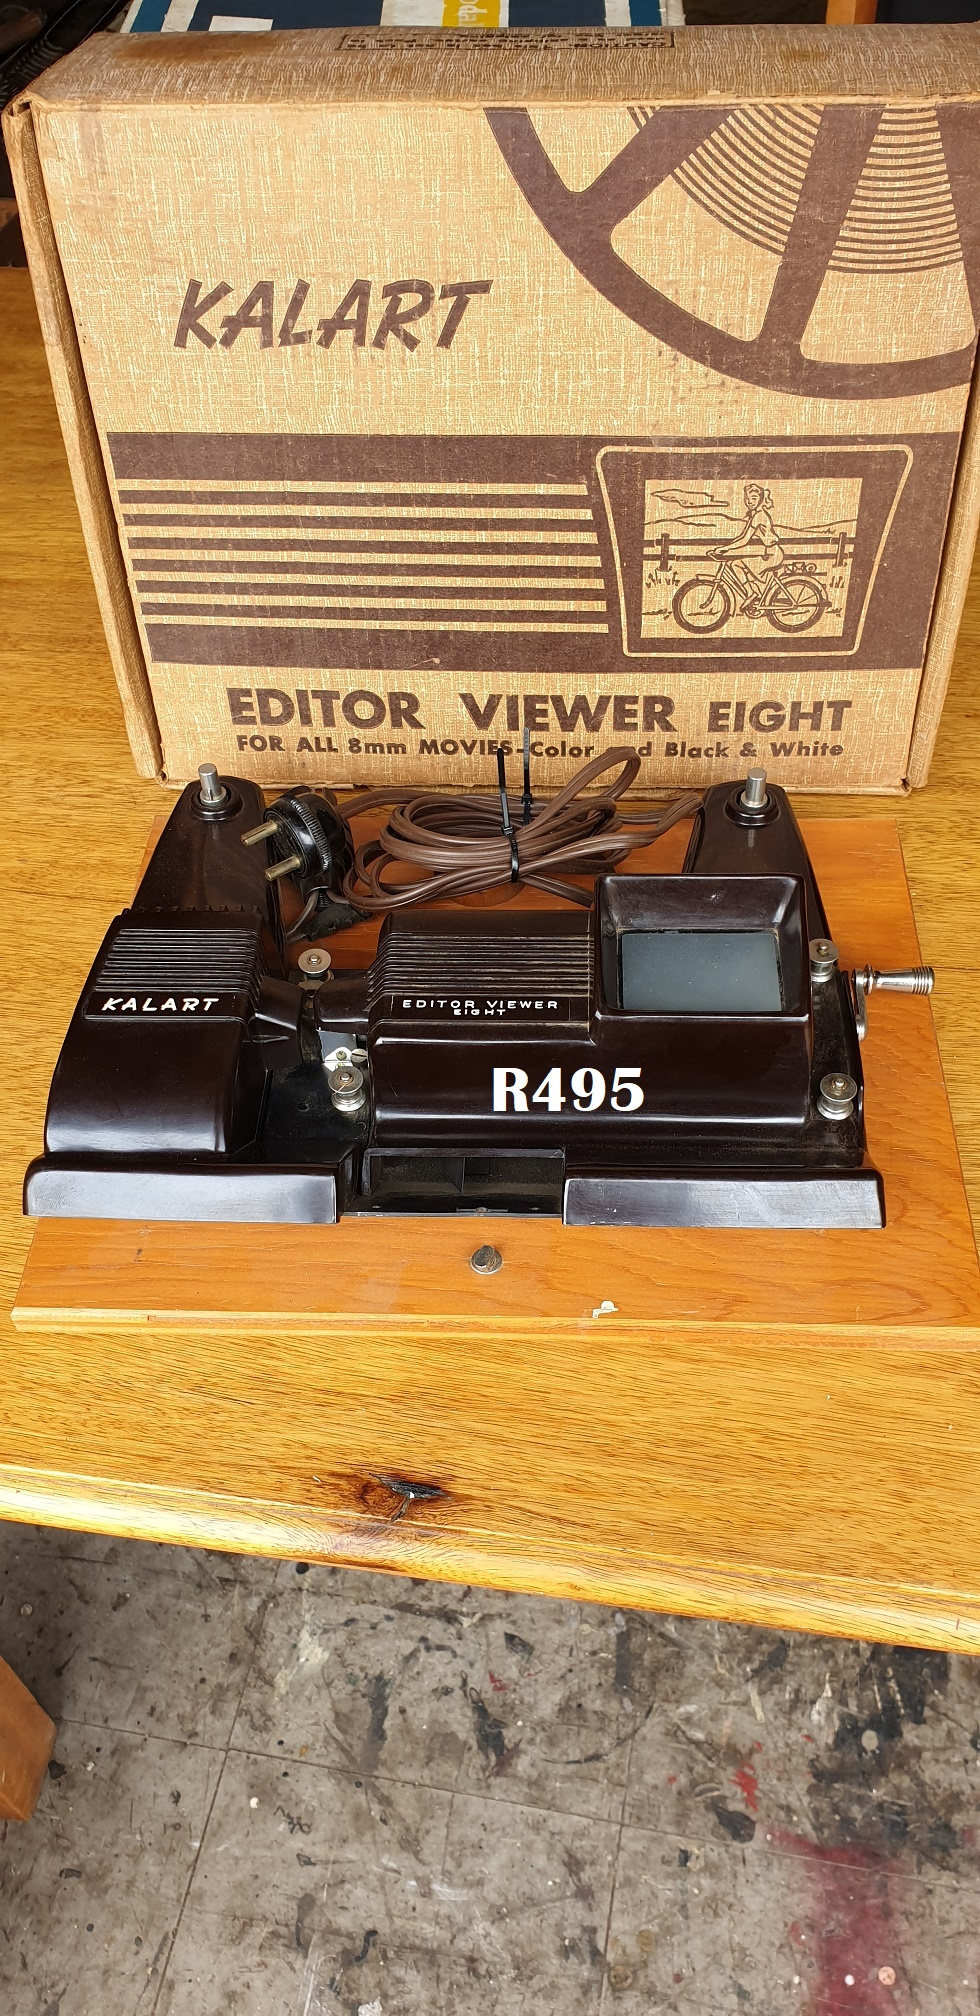 Kalart Editor Viewer Eight for 8mm movies - Color and Black and White